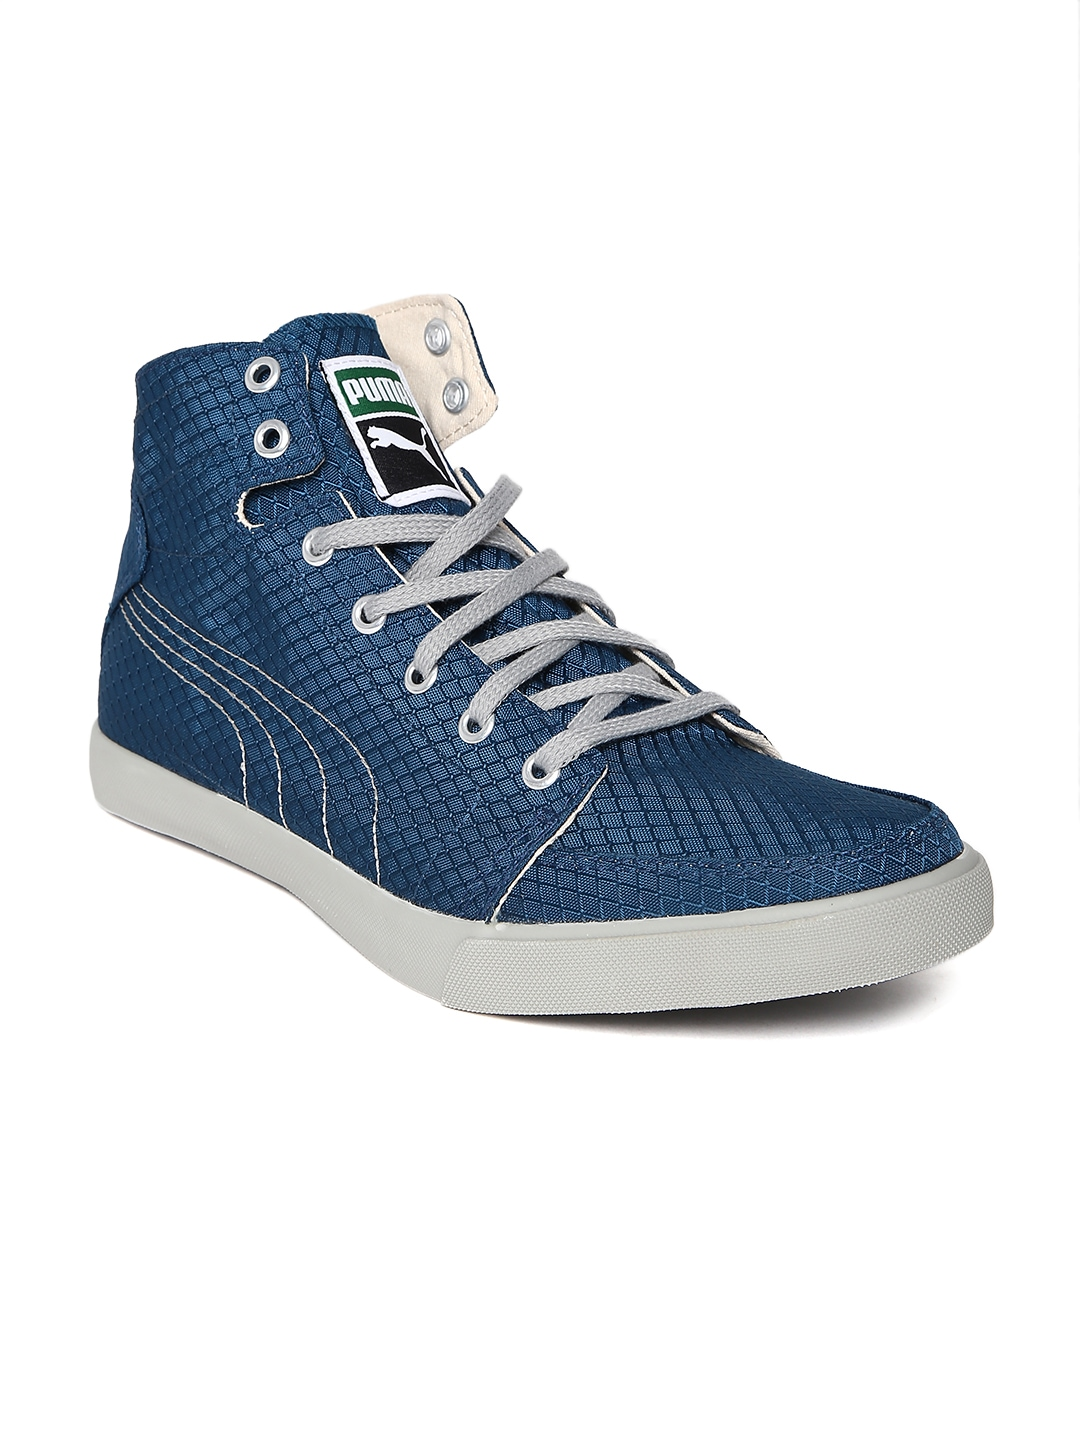 jabong coupon code for puma shoes